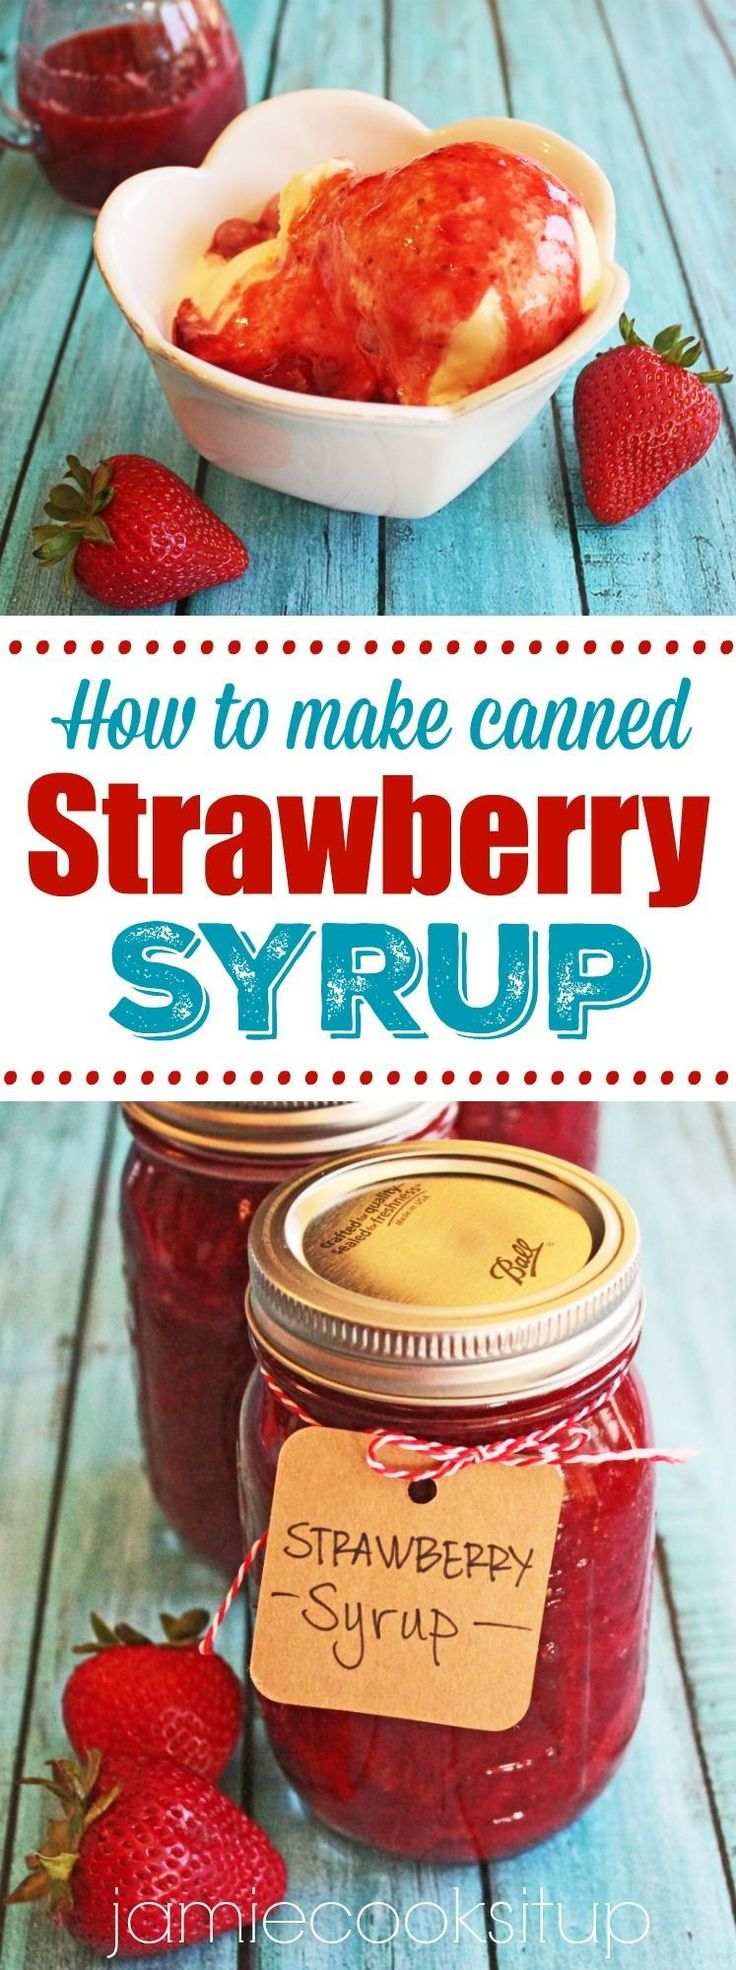 How to make Canned Strawberry Syrup from Jamie Cooks It Up #Jamie'scookingtips